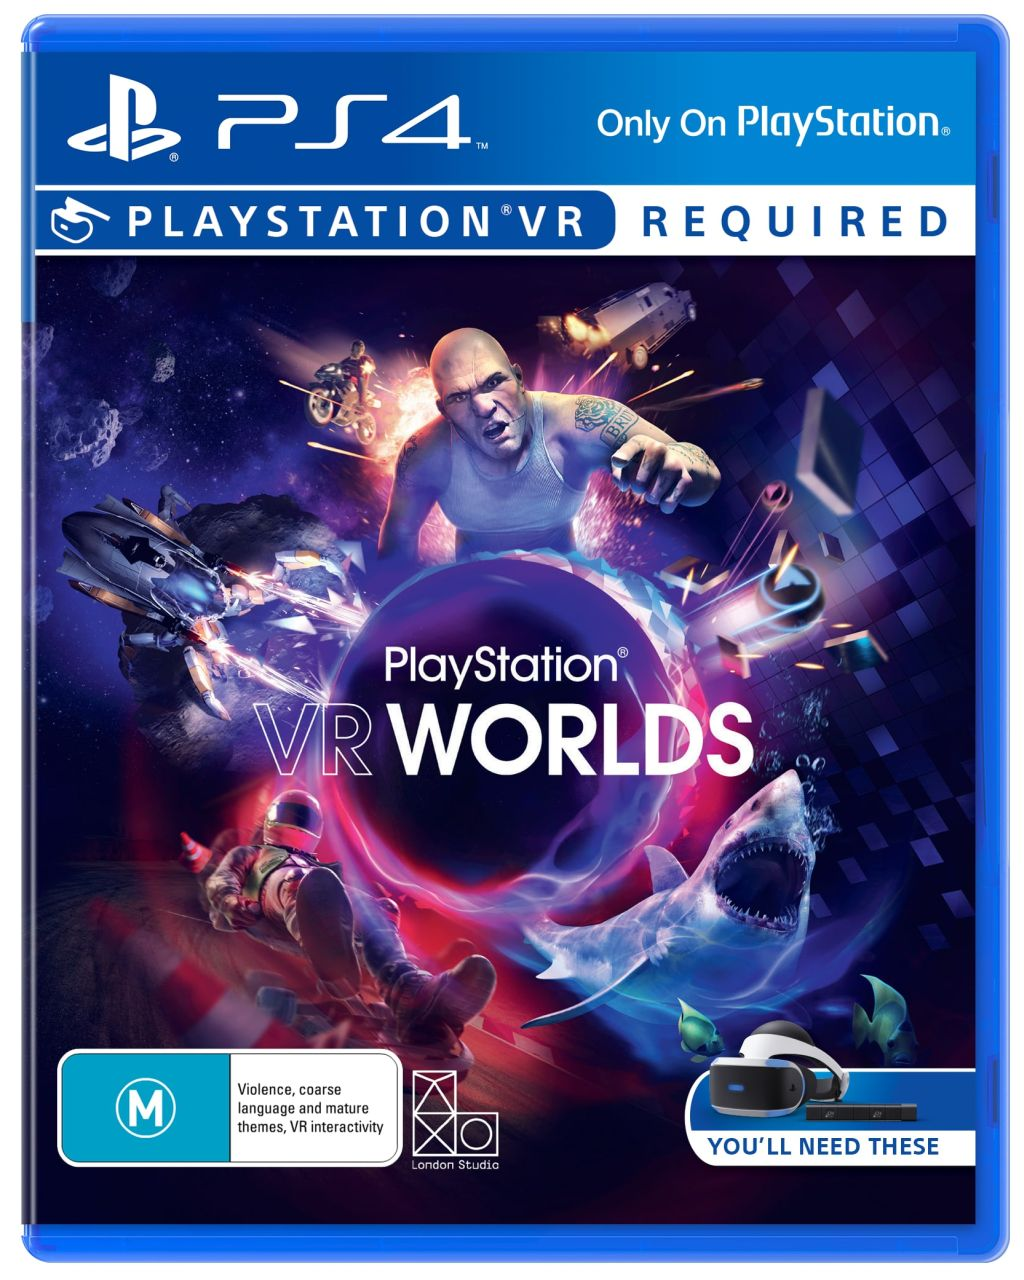 Sony - PS4 Playstation VR Worlds Game